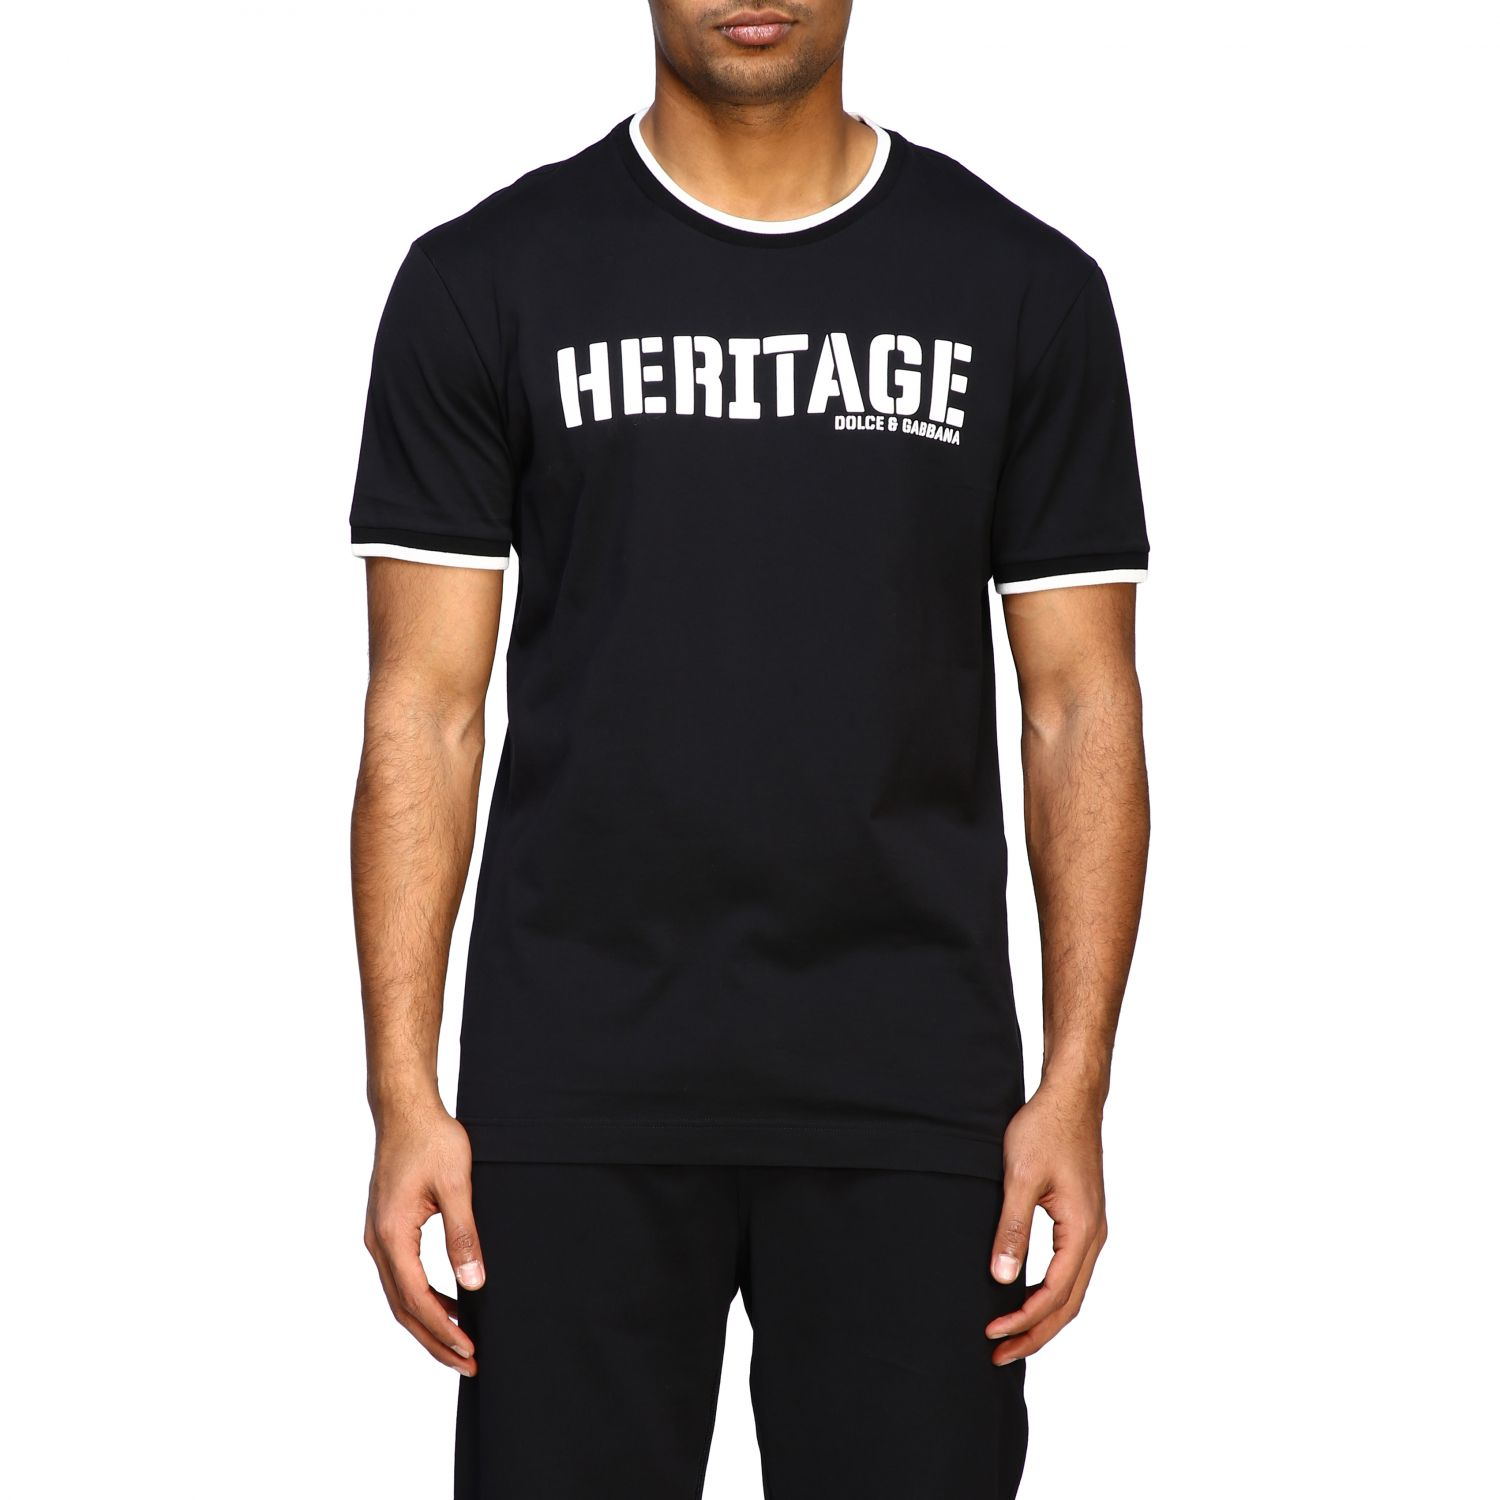 T-shirt Dolce & Gabbana: Dolce & Gabbana short-sleeved T-shirt with Heritage print black 1